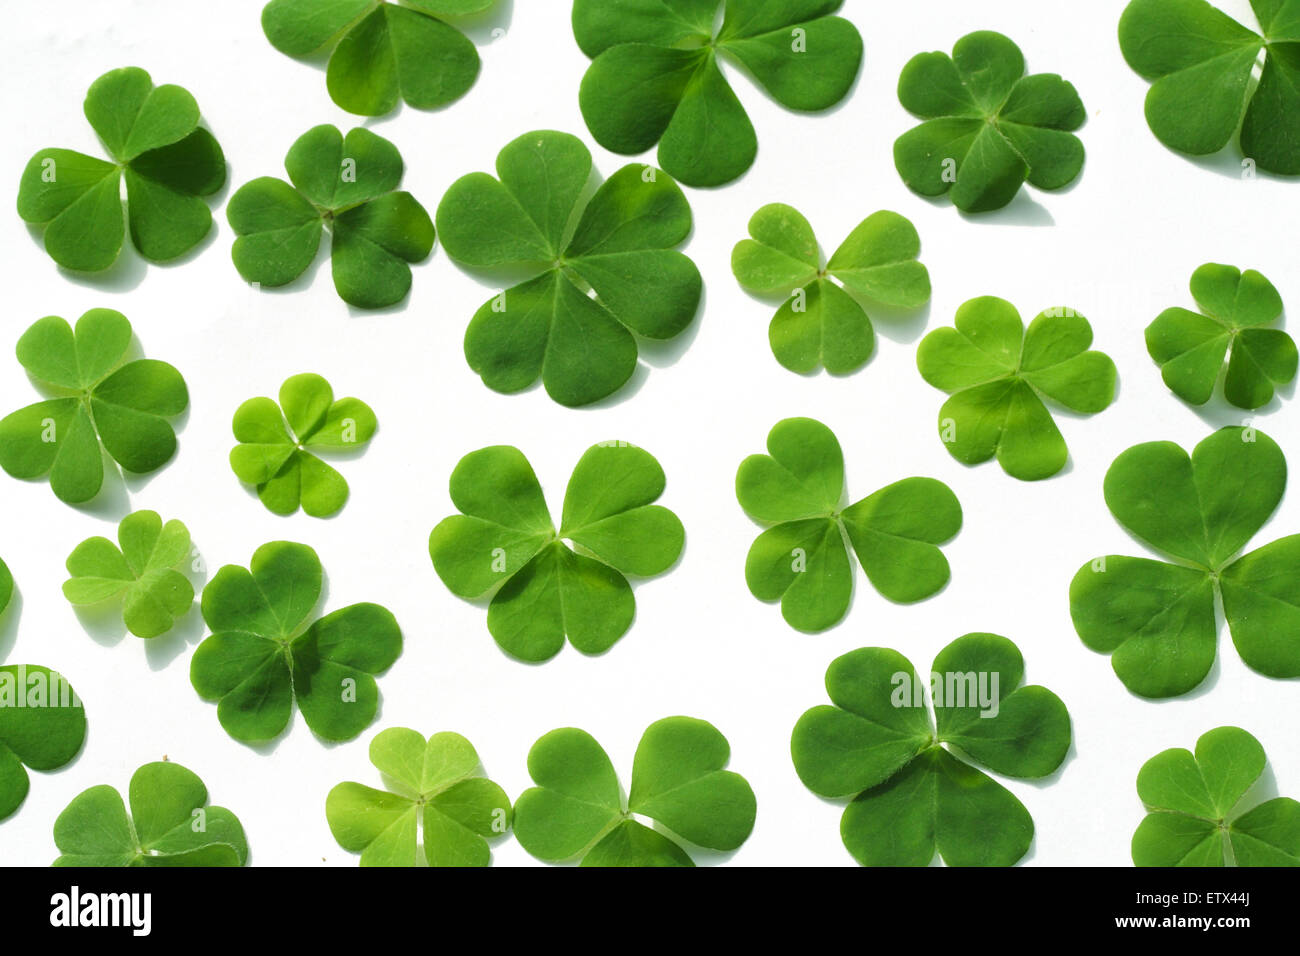 Shamrock Three Leaf Clovers Isolated On White Background Stock